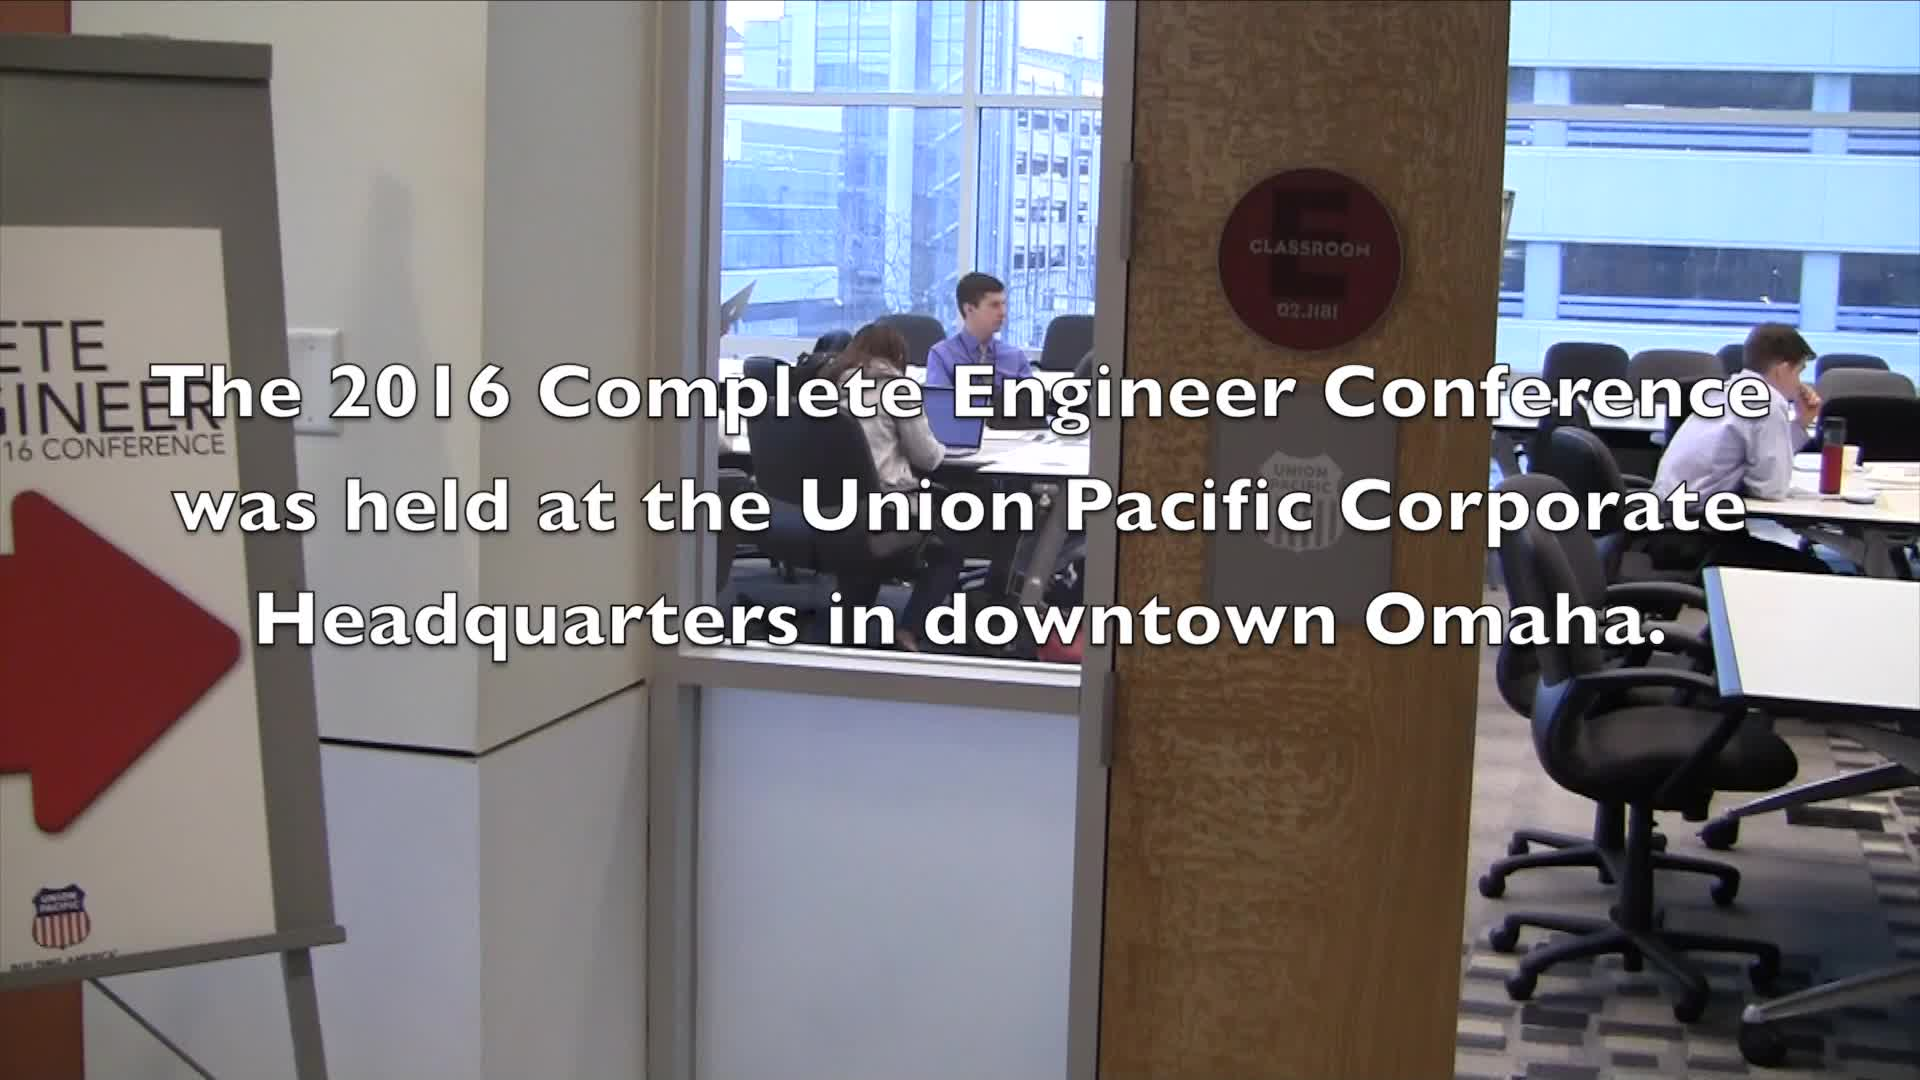 2016 Complete Engineer Conference